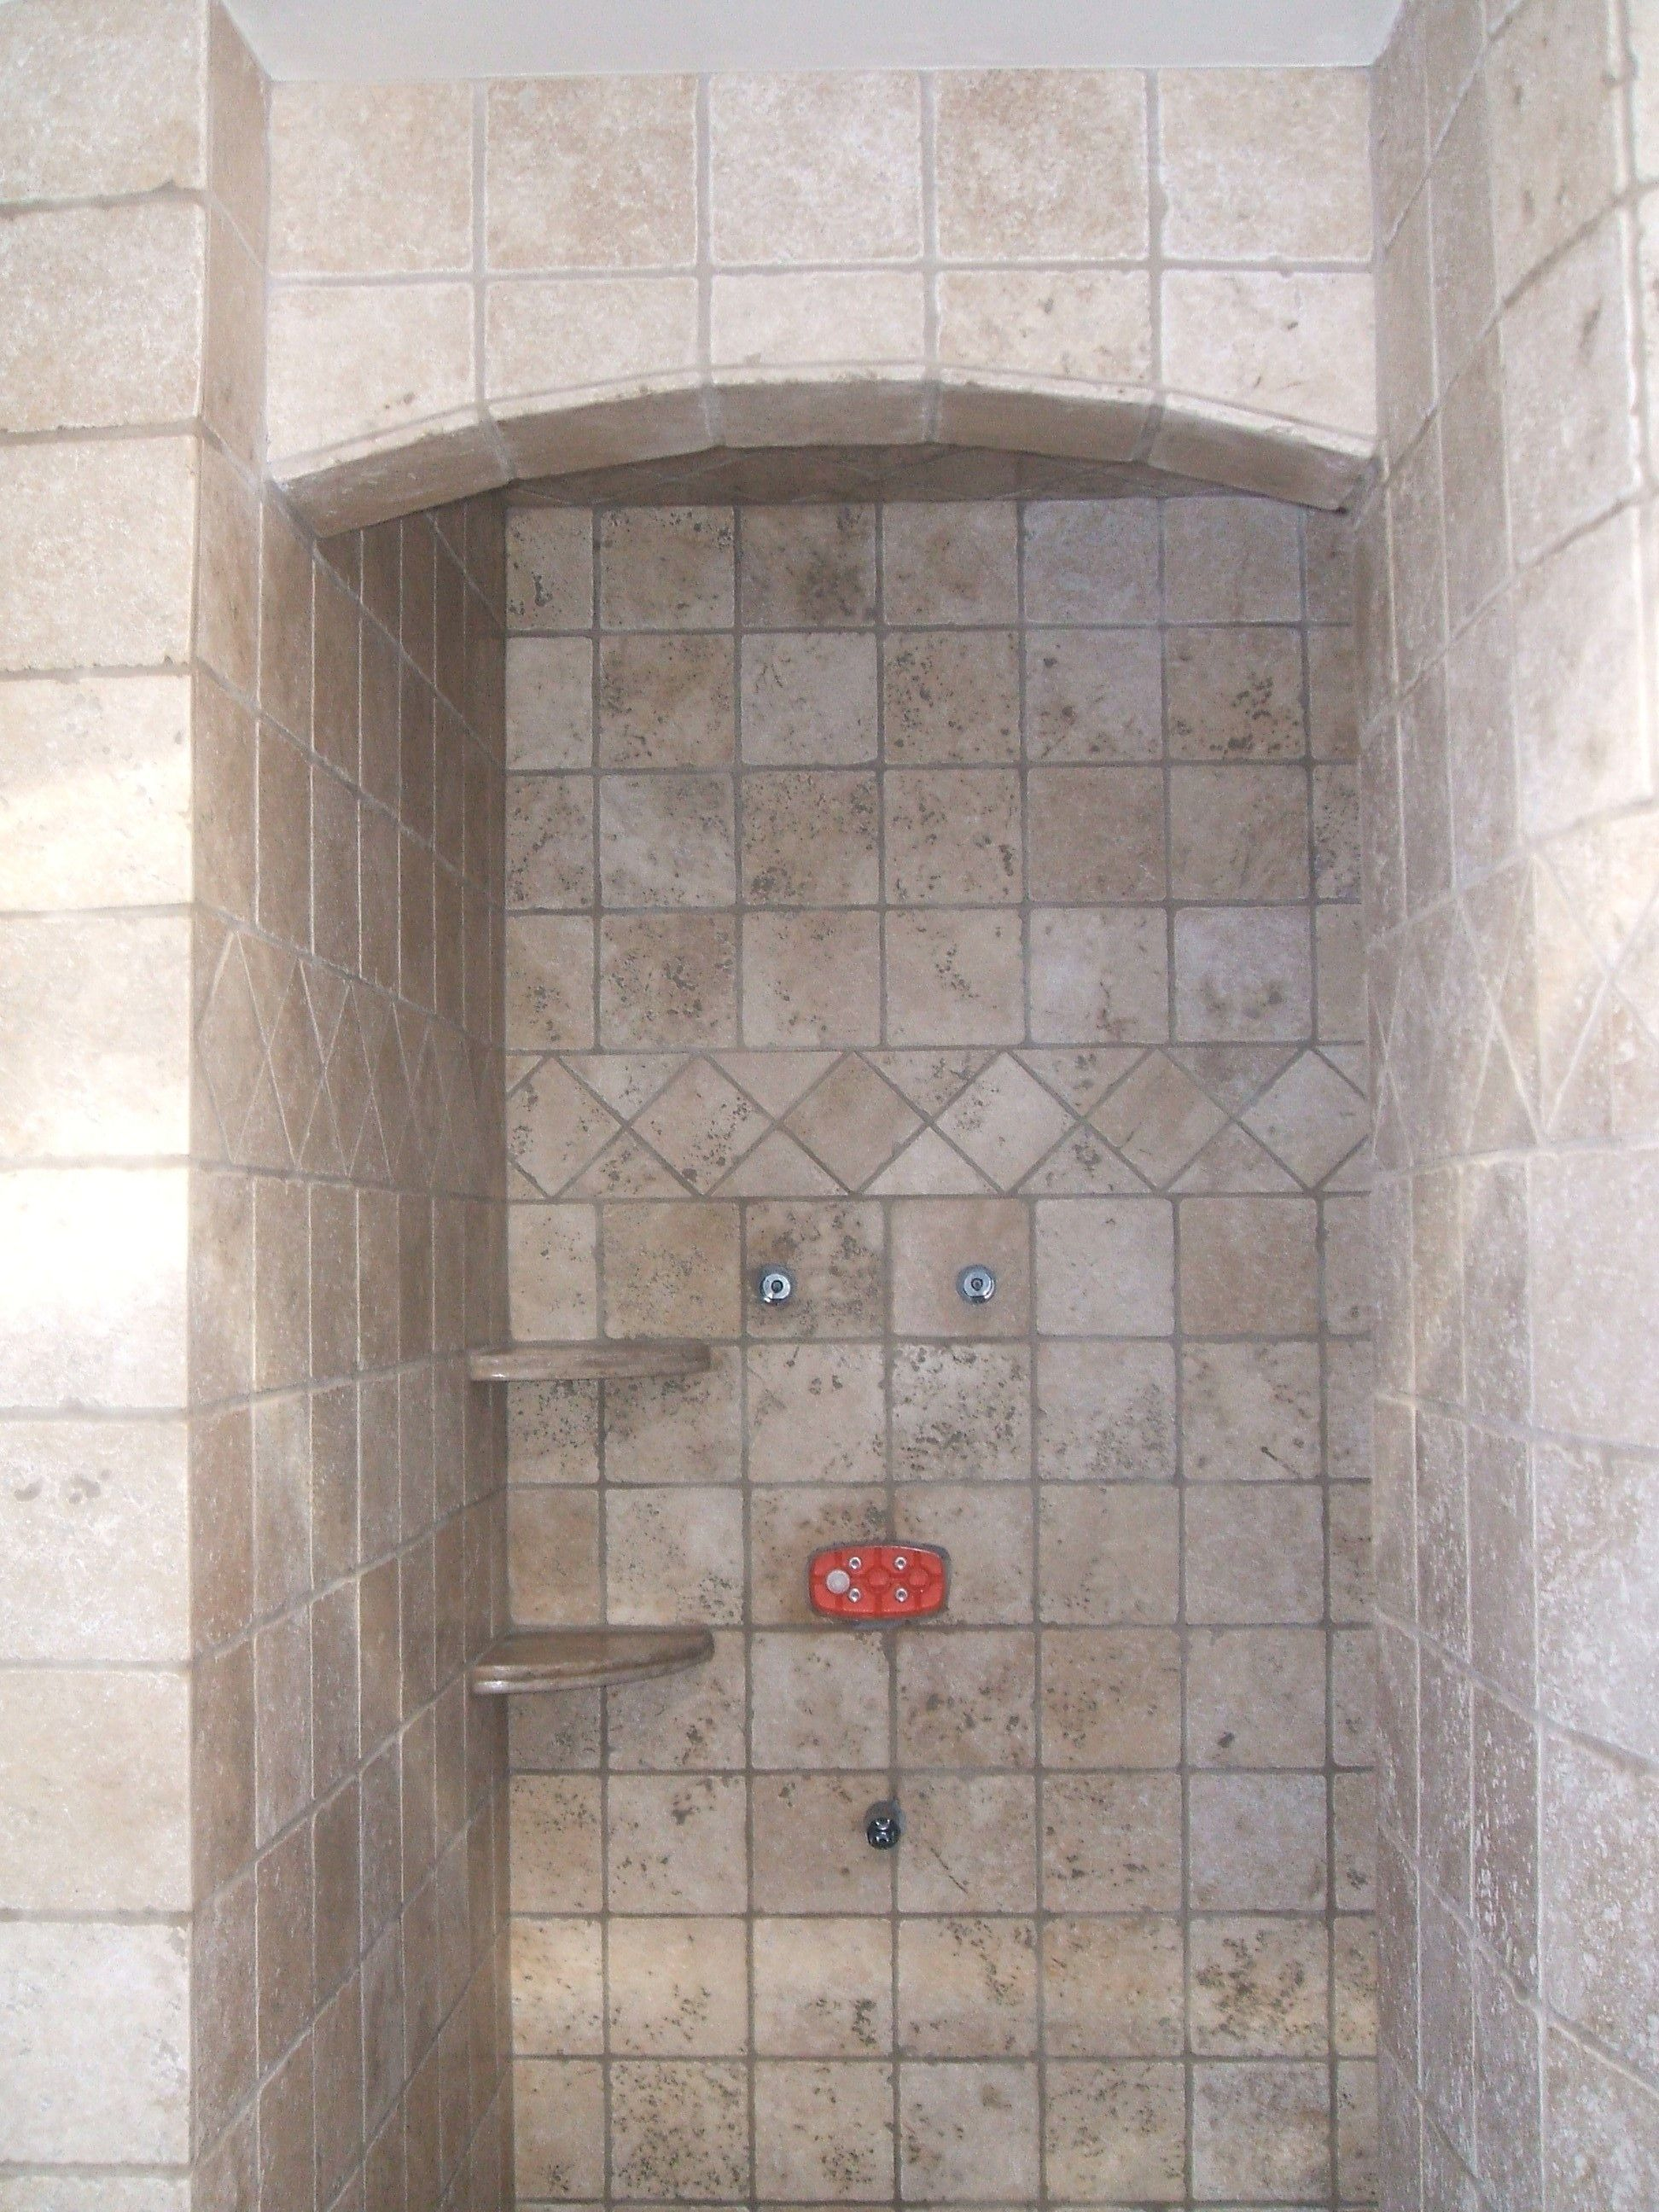 Terrific ceramic tile shower ideas small bathrooms with for Bathroom ceramic tiles design